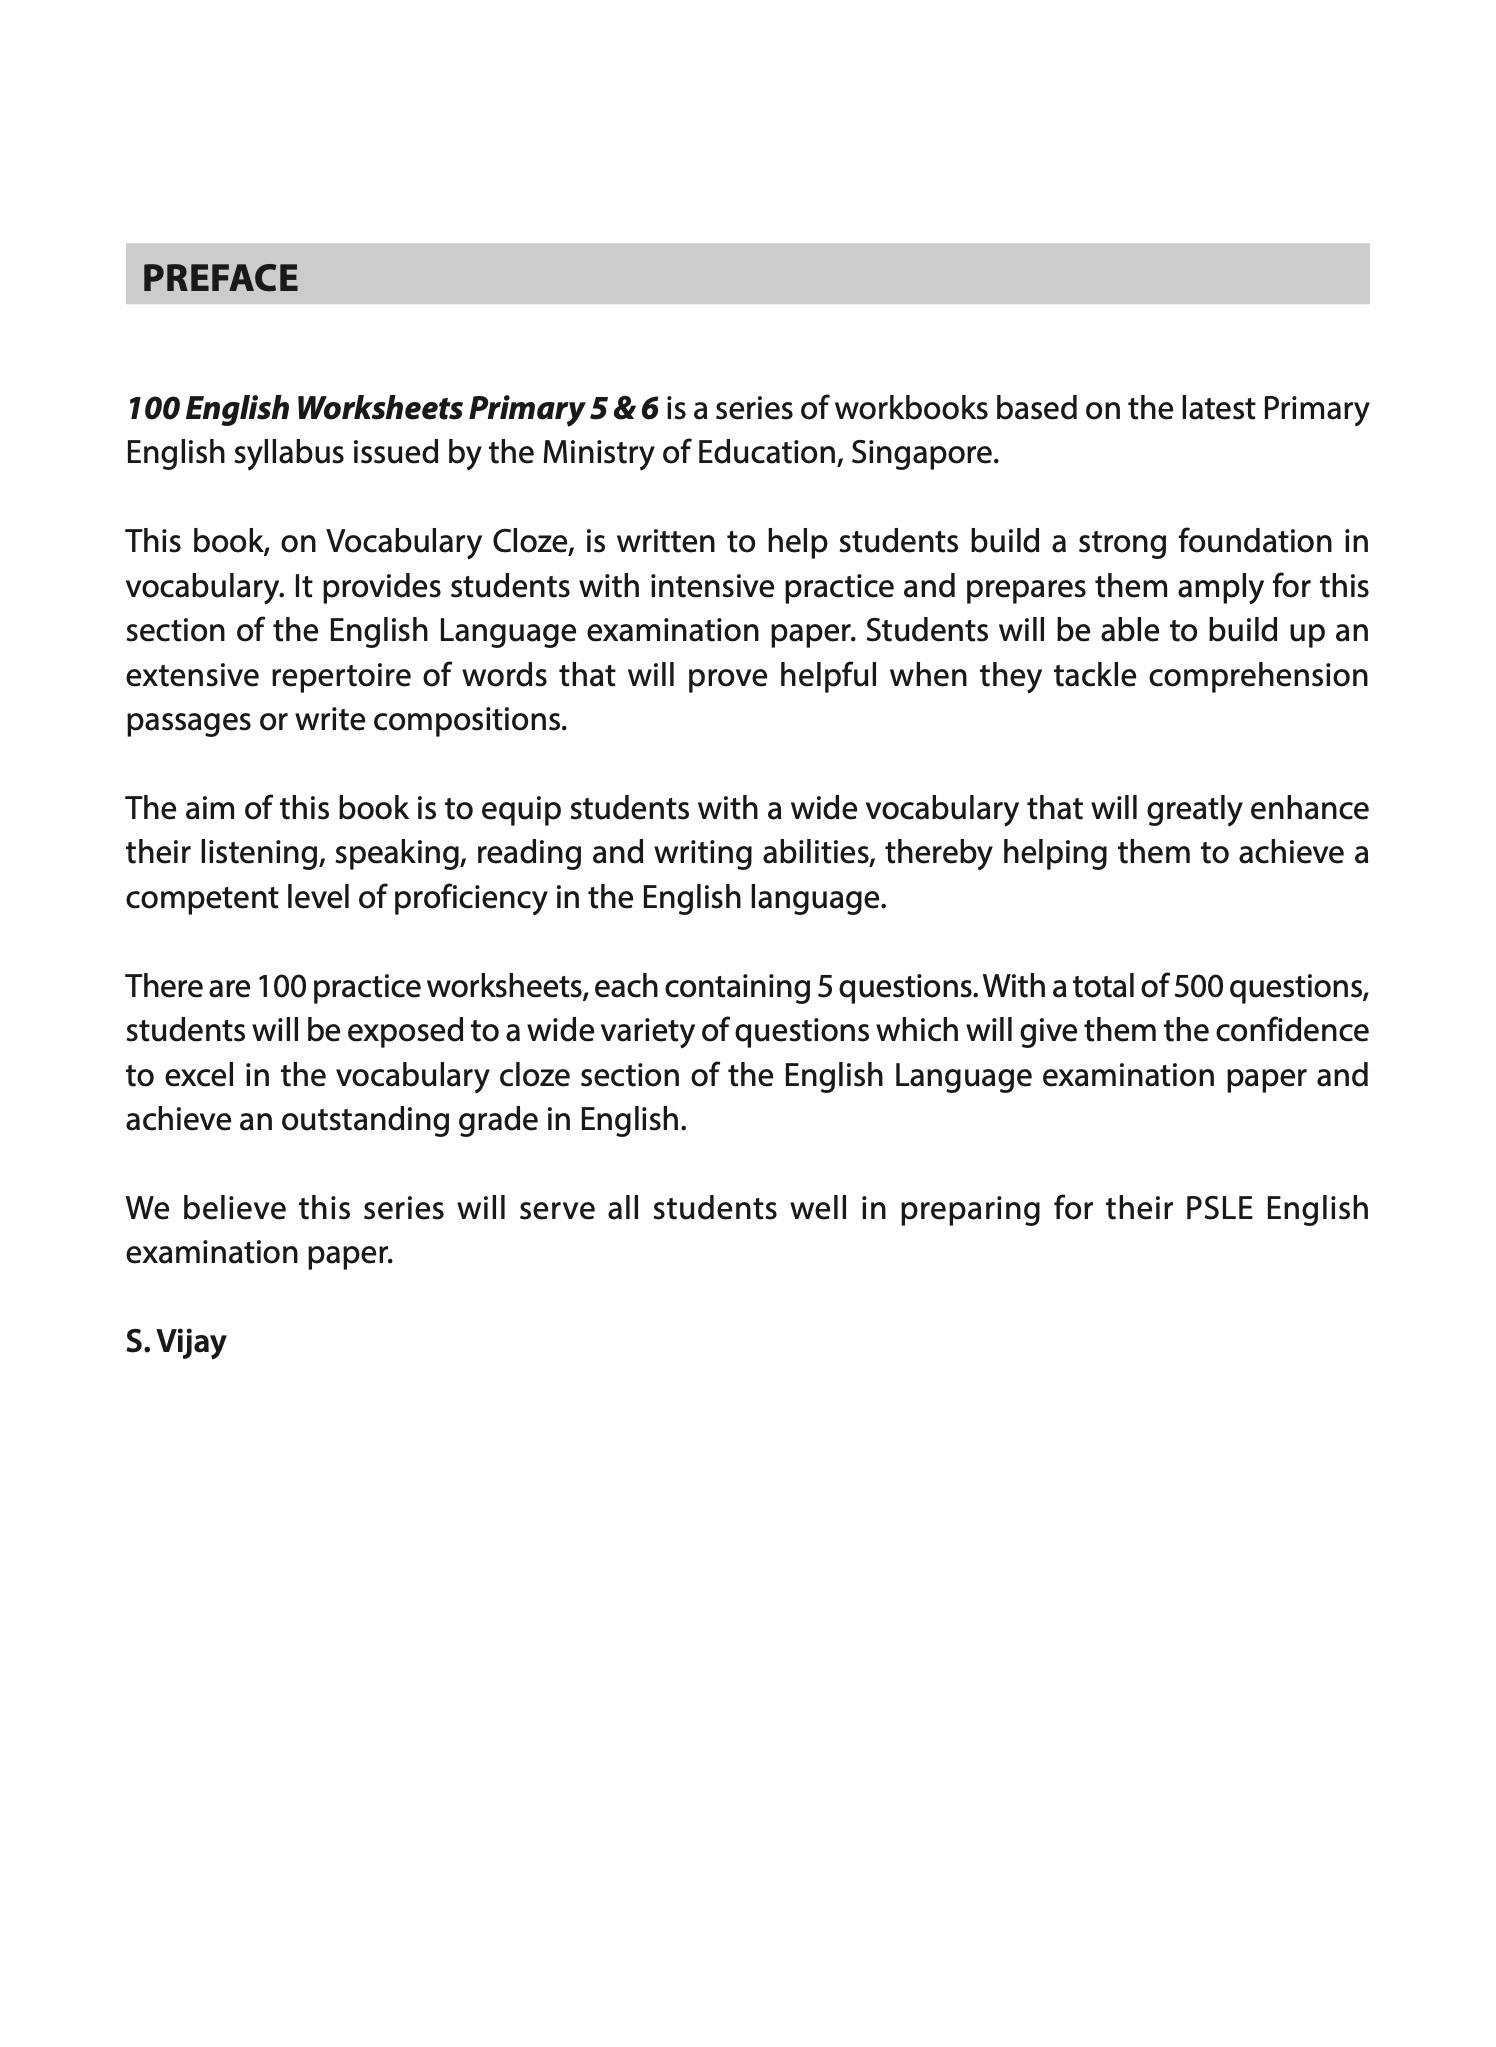 hight resolution of 100 English Worksheets Primary 5 \u0026 6: Vocabulary Cloze   CPD Singapore  Education Services Pte Ltd